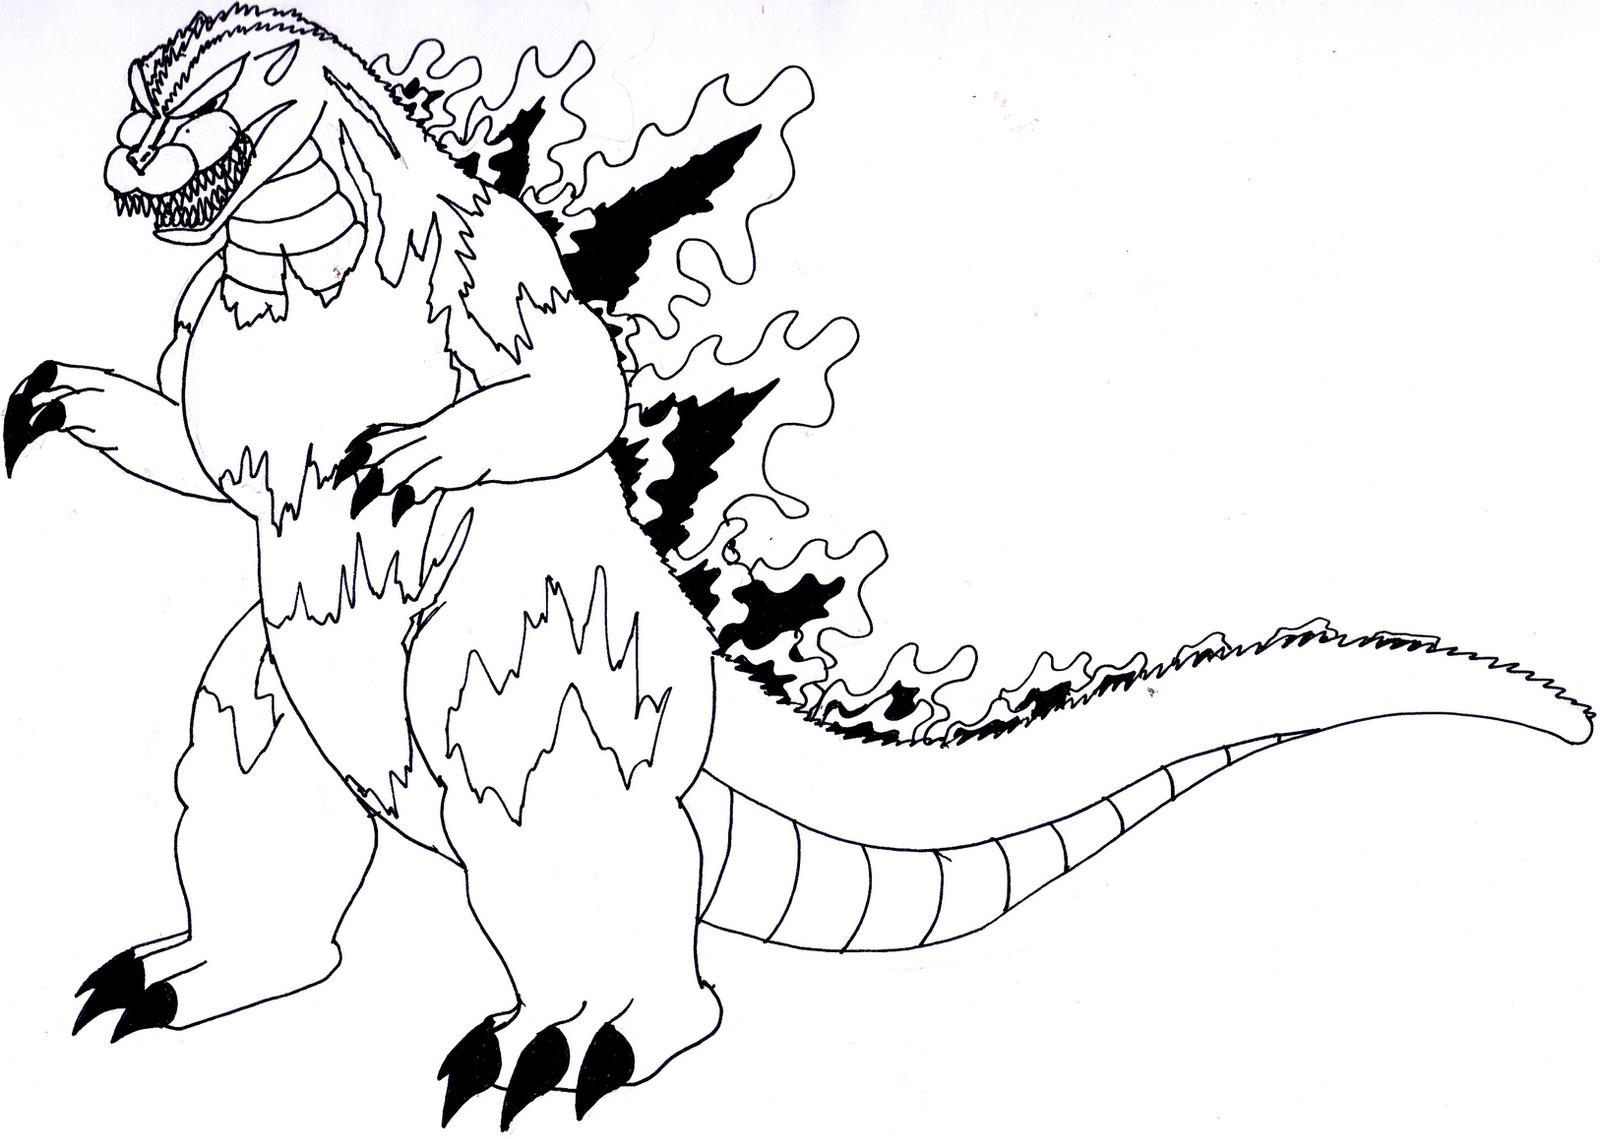 Gmod coloring pages - Gigan05 9 7 1995 Godzilla No Detail By Thegmodgirl